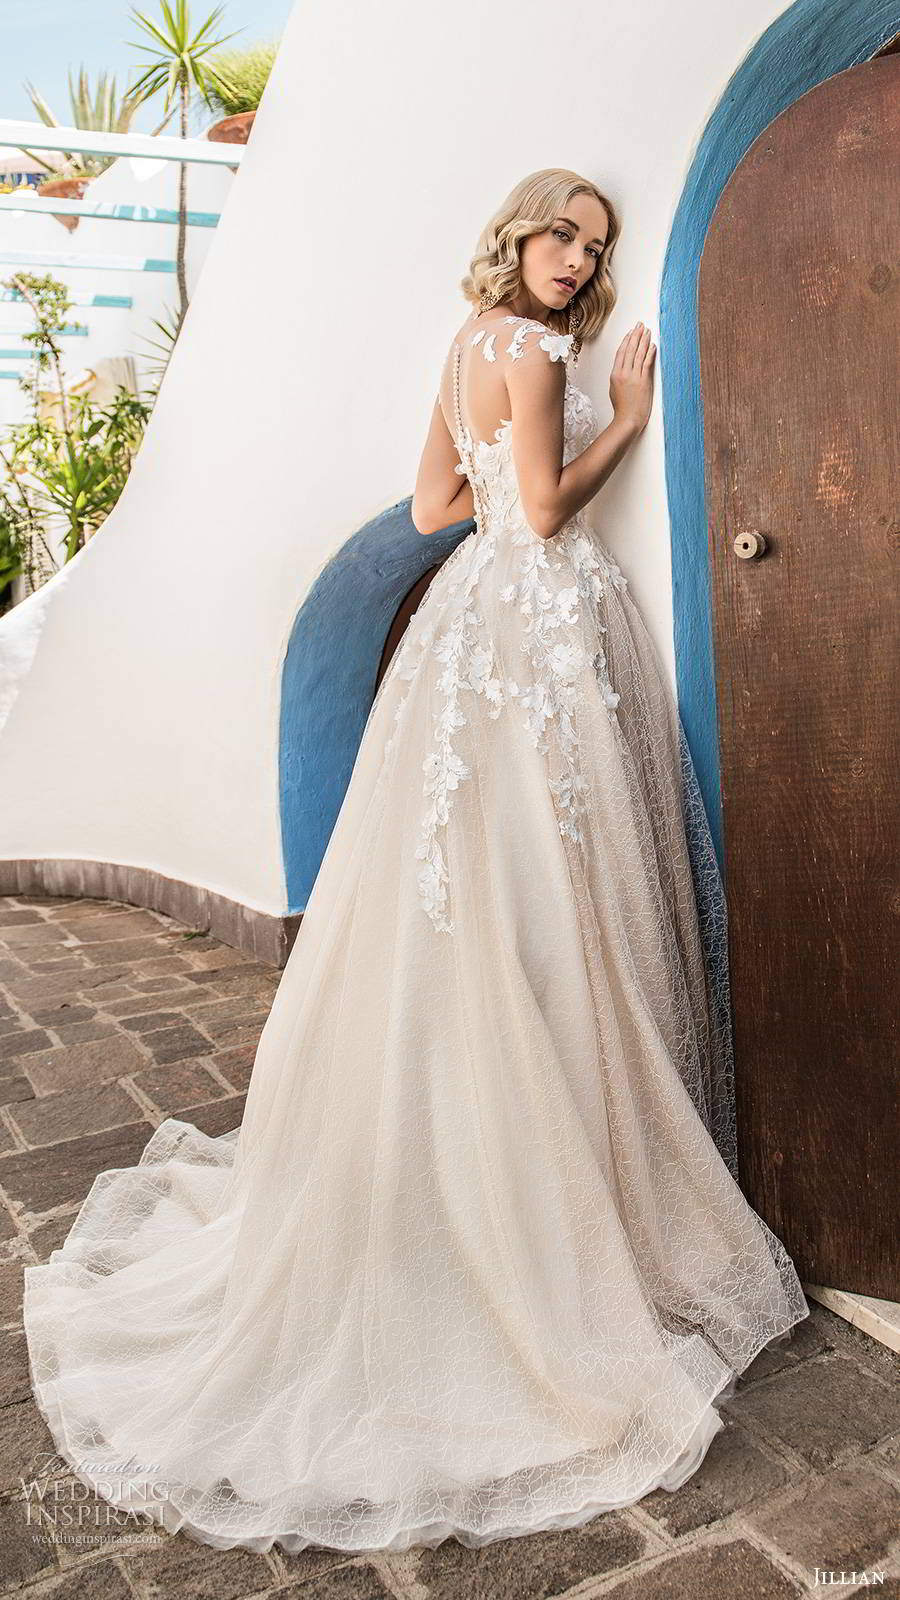 jillian sposa 2020 bridal illusion cap sleeves sweetheart neckline embellished bodice a line ball gown wedding dress chapel train blush color (2) bv